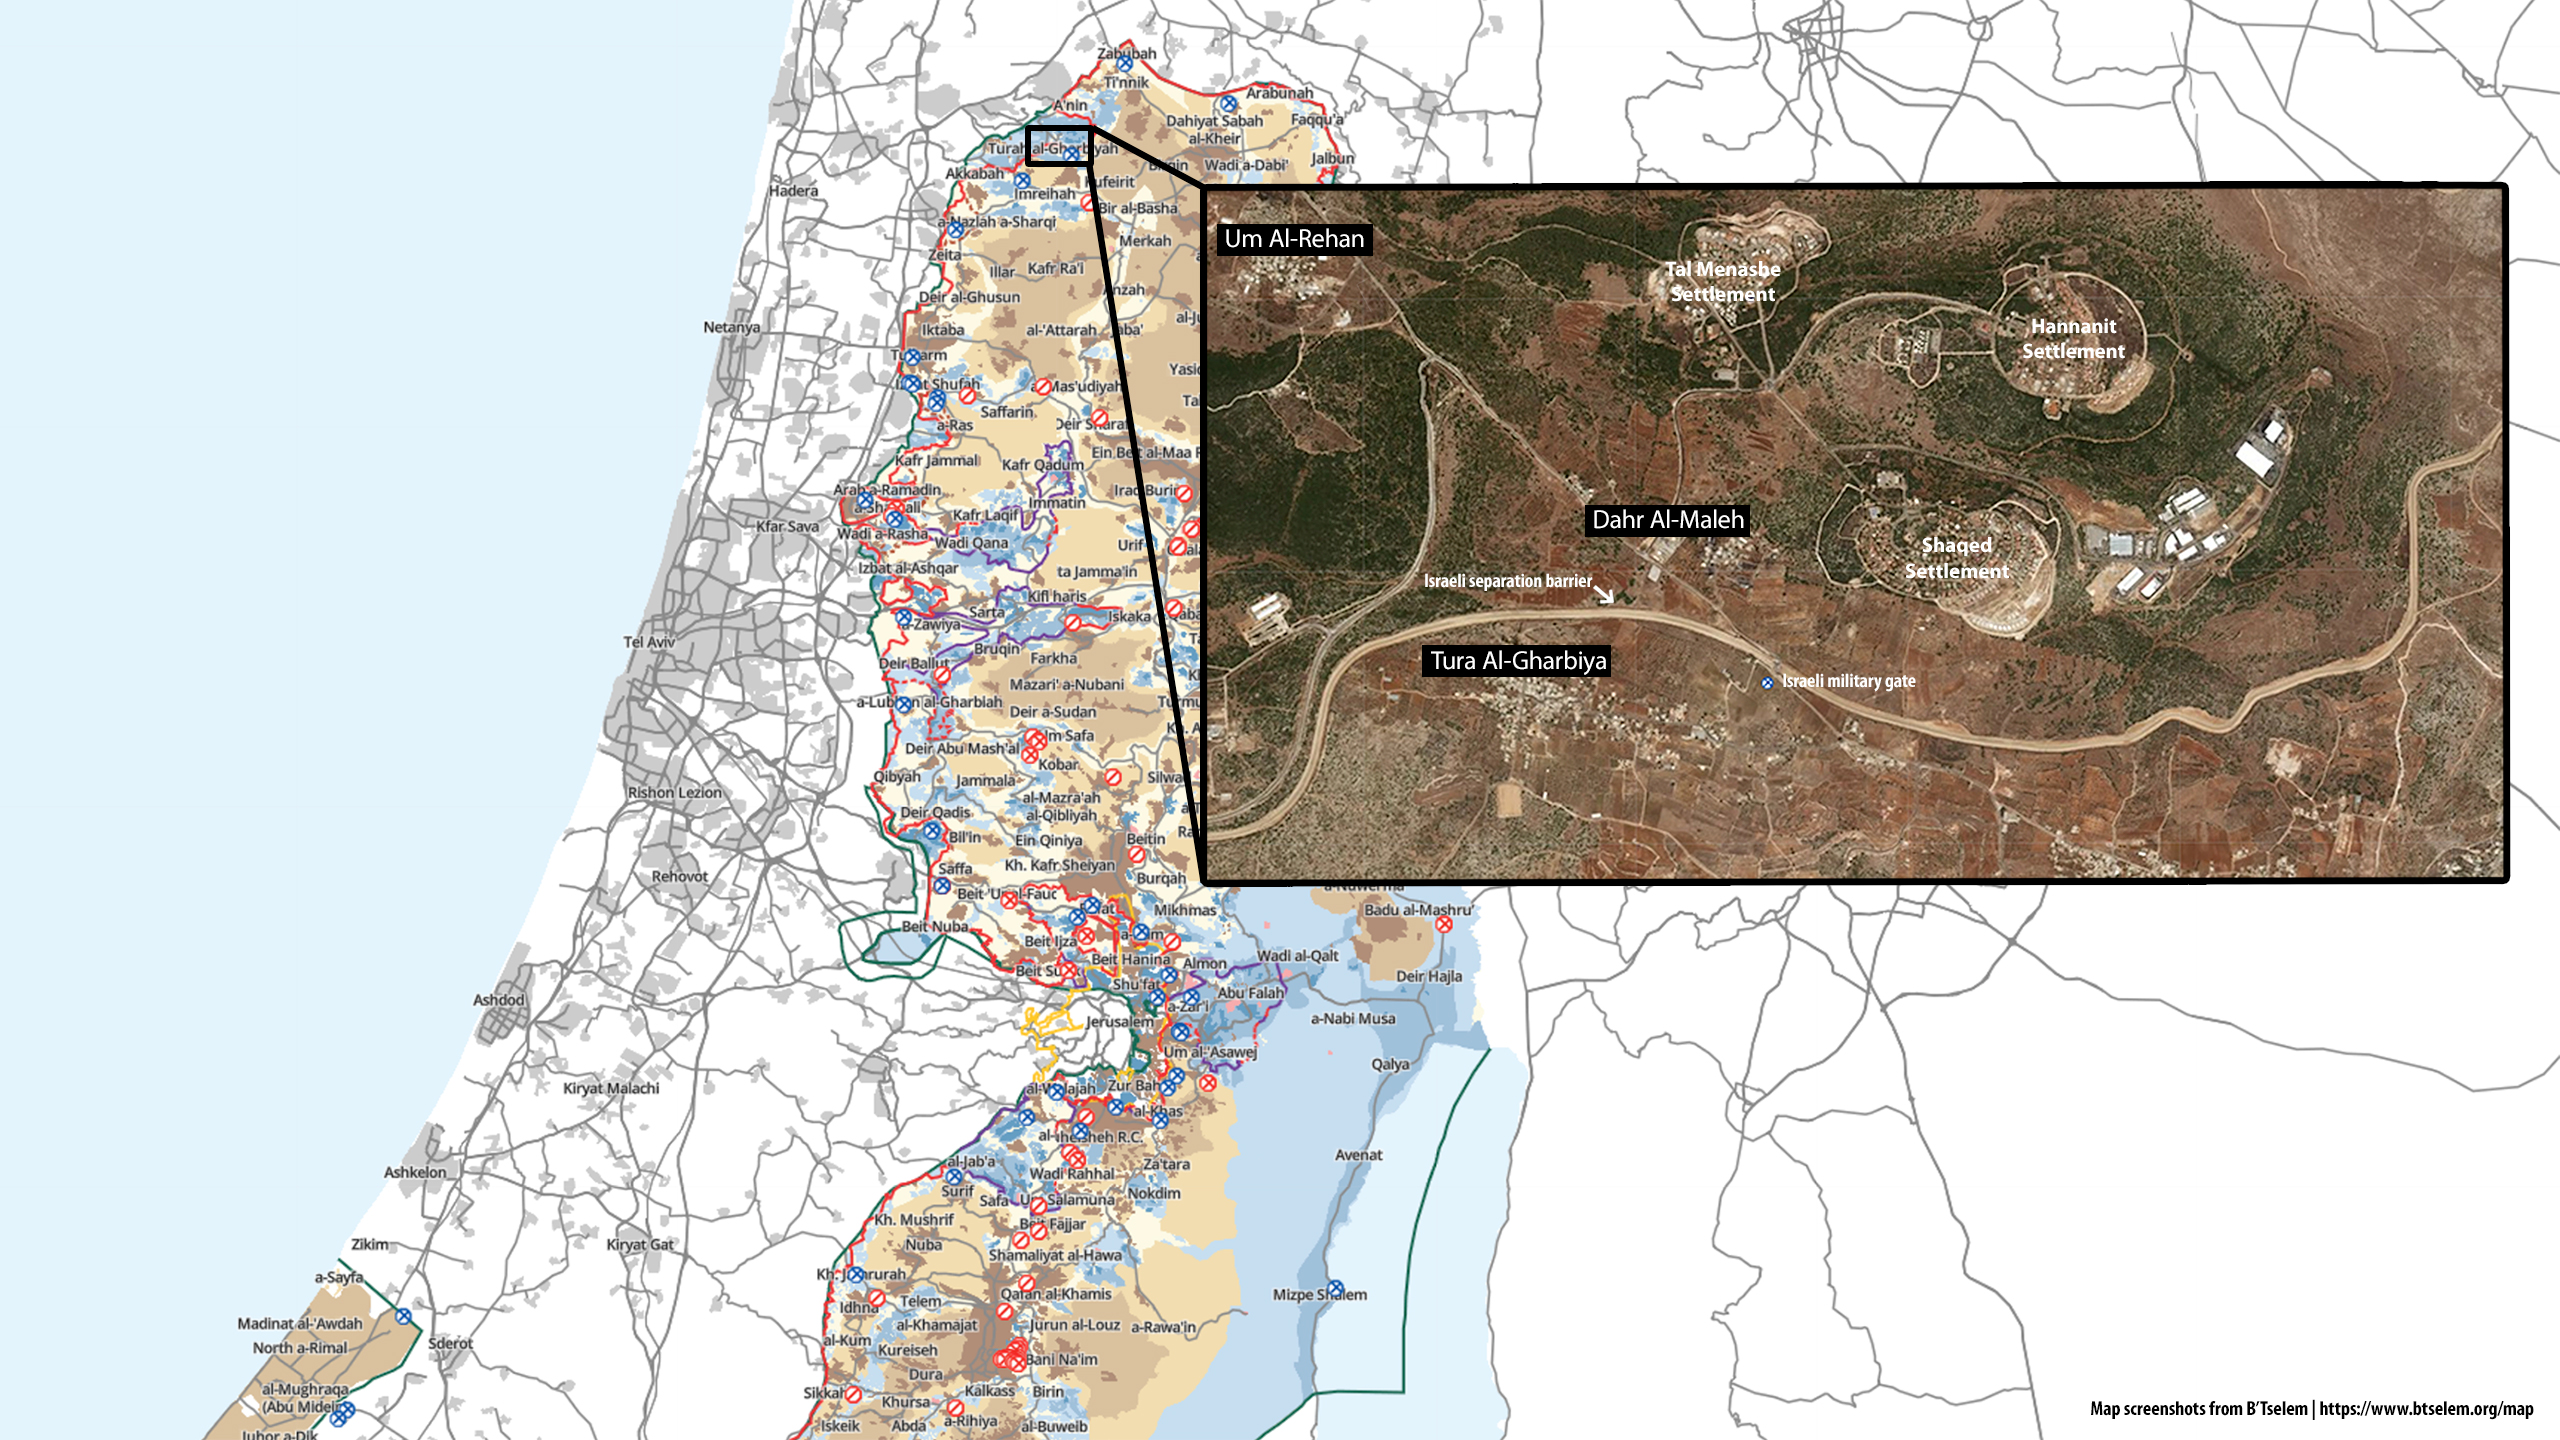 Map depicting location of Dahr Al-Maleh, the Israeli separation barrier, military gate, and Tura Al-Gharbiya village. Screenshots: B'Tselem interactive map